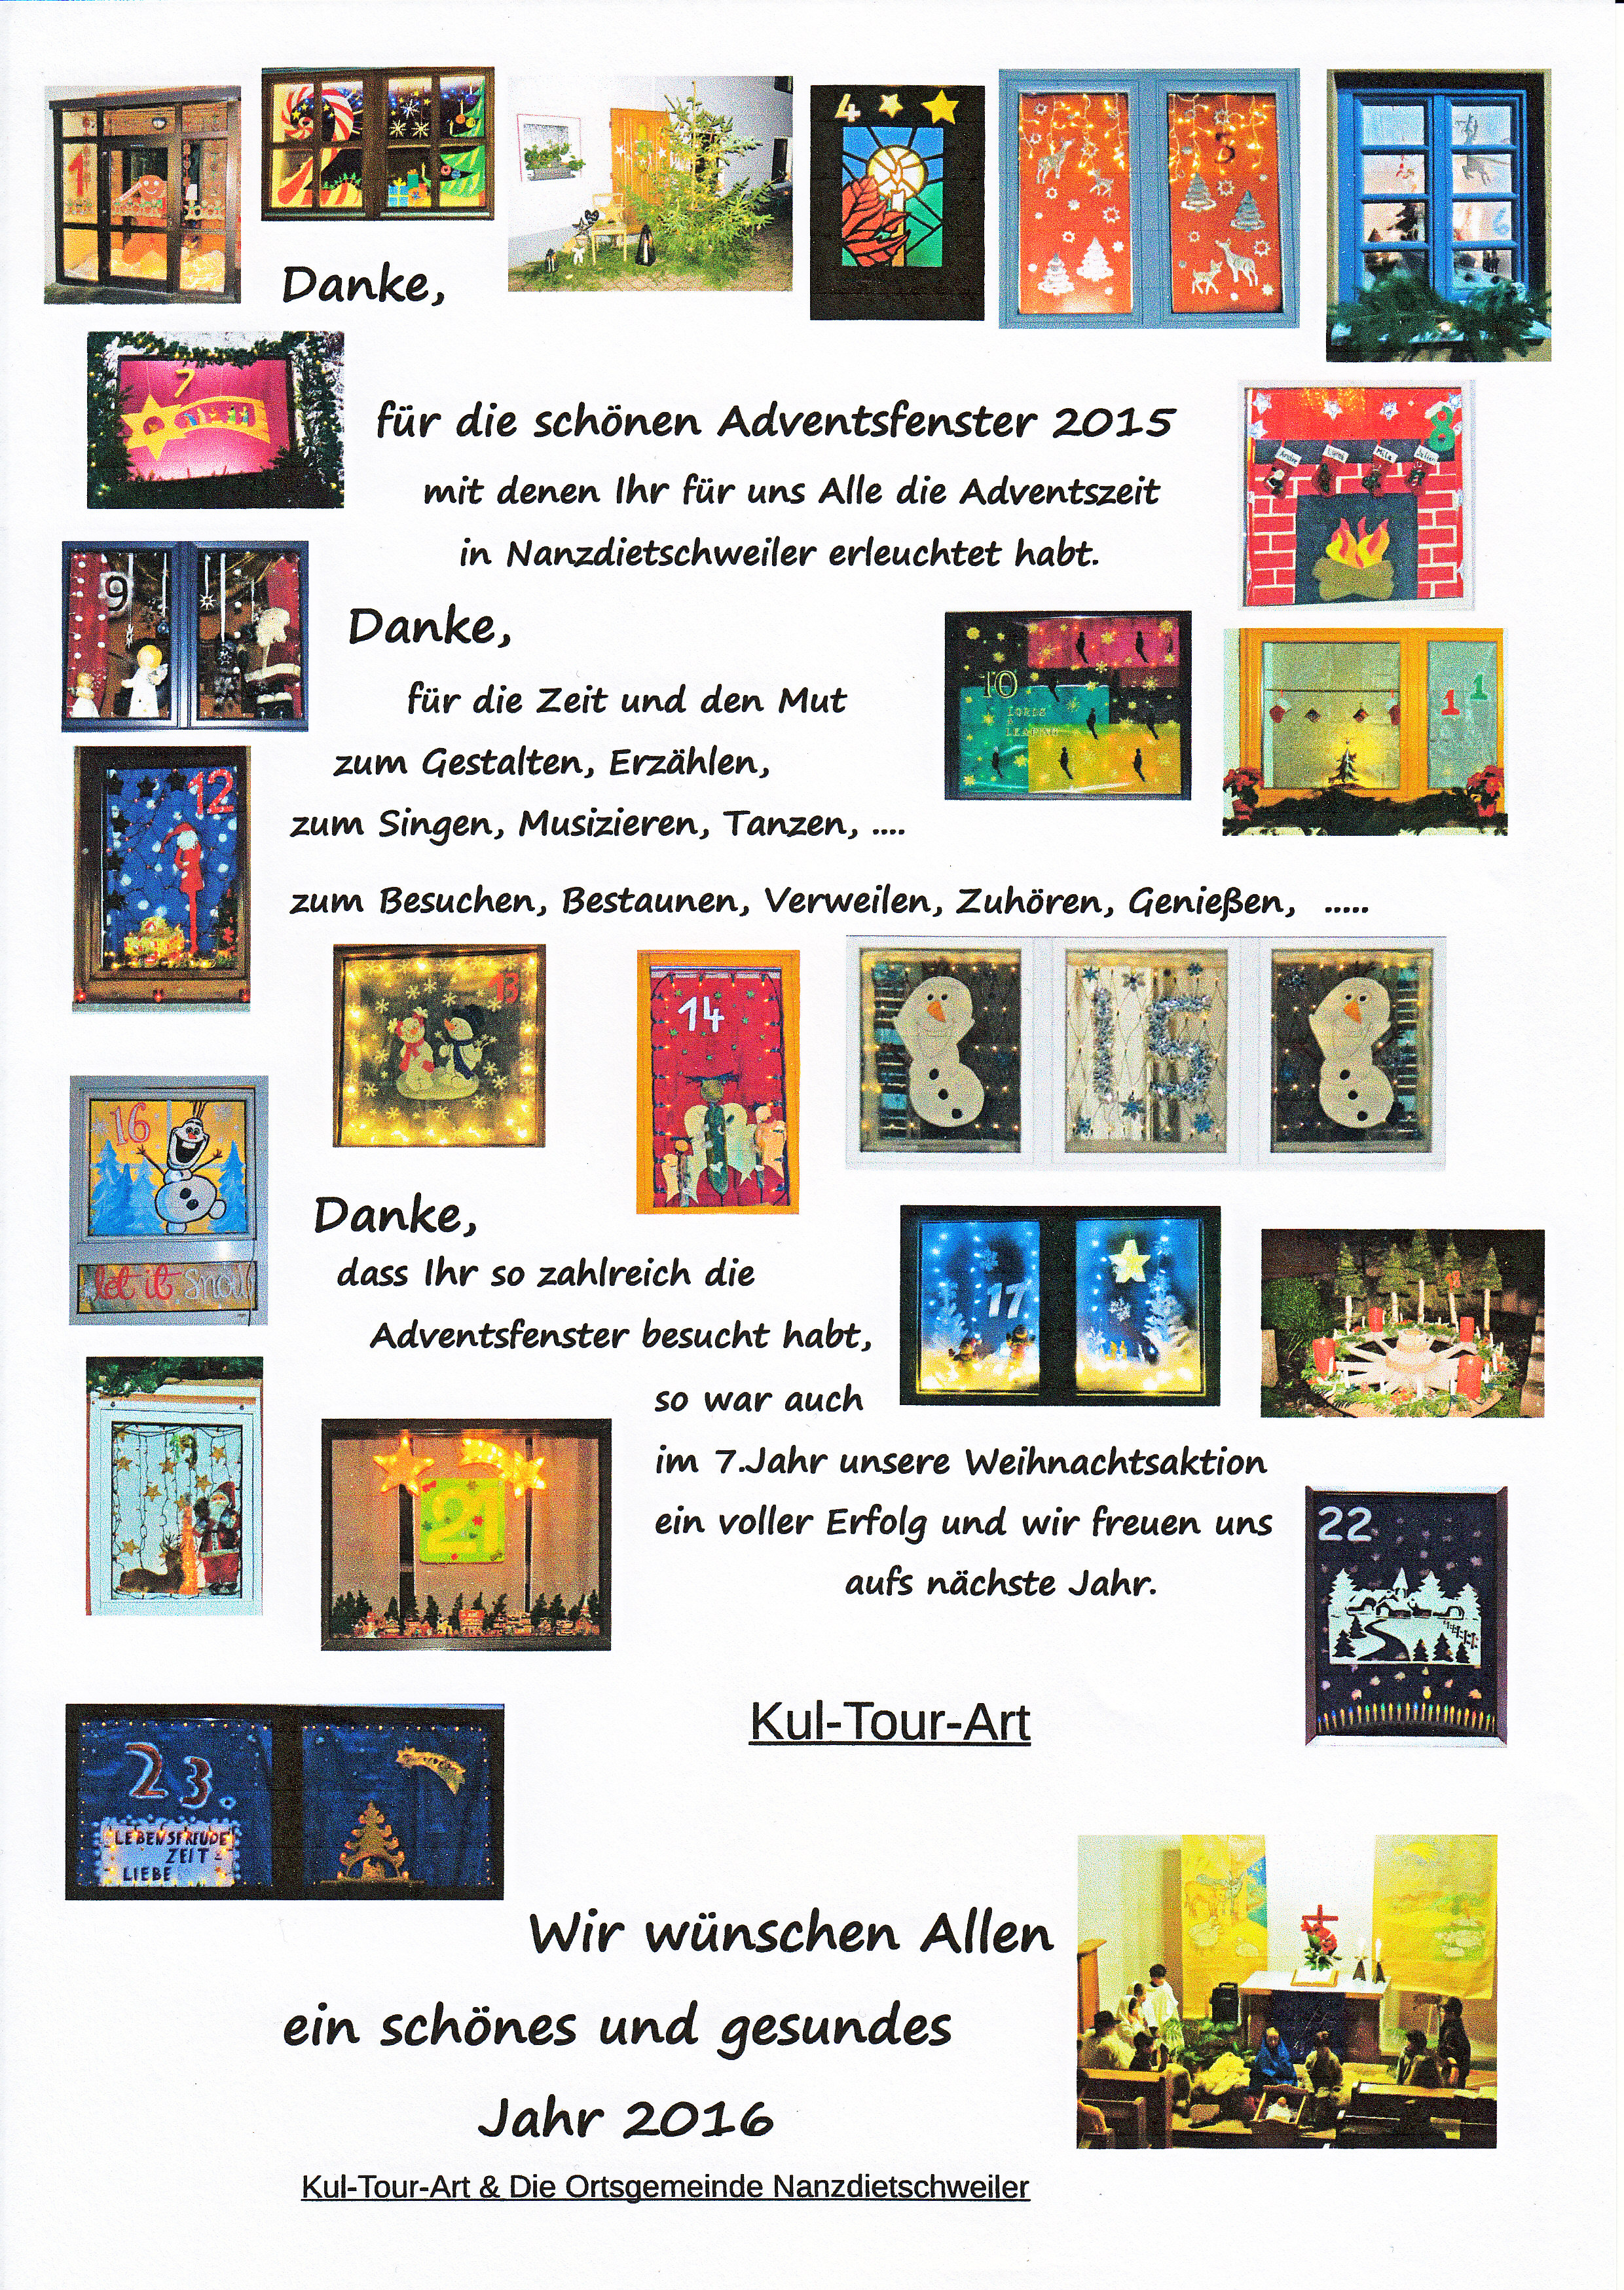 2015 Danke Adventskalender 2015